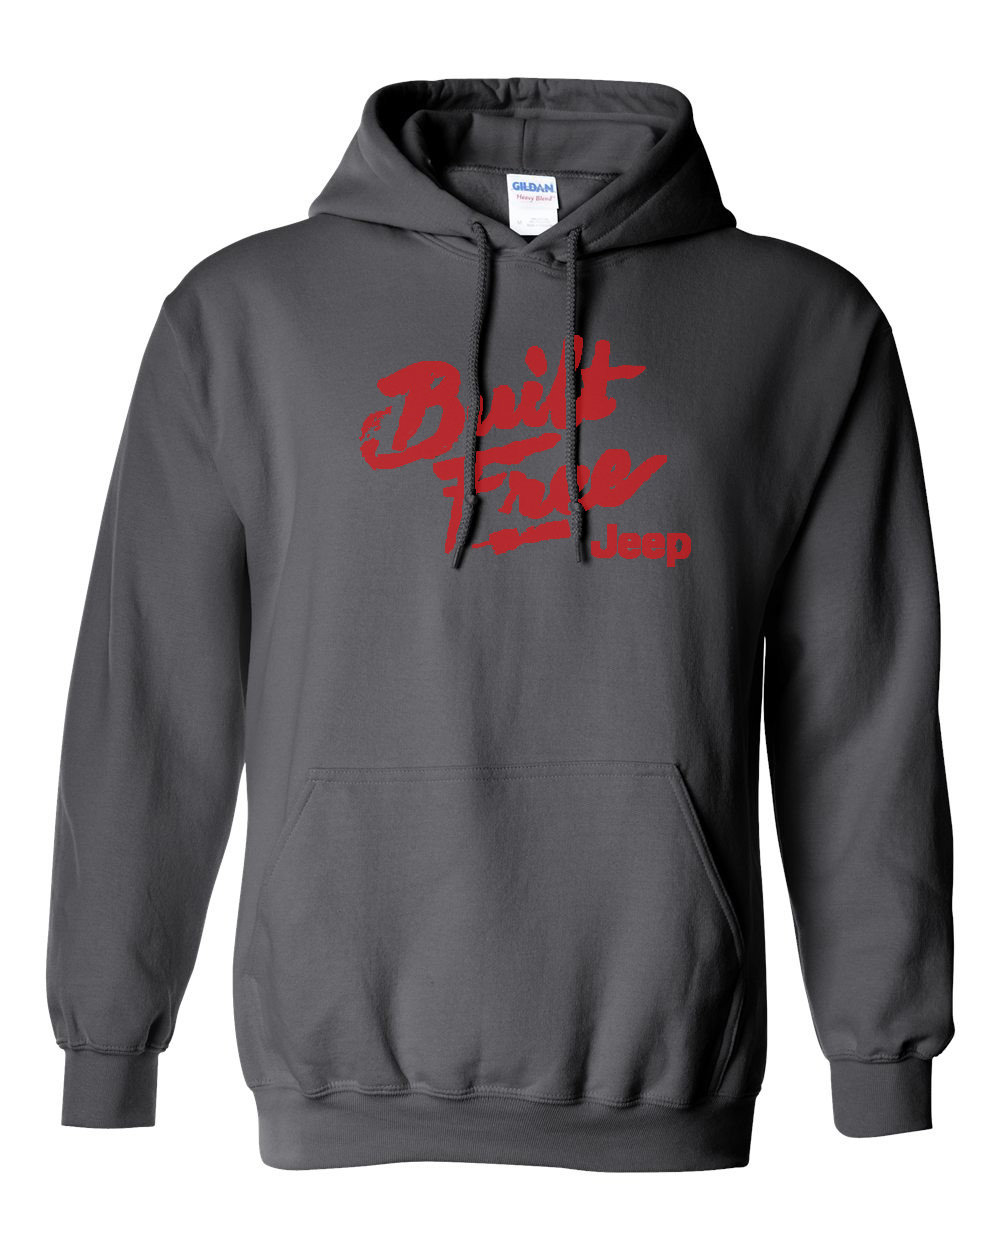 Jeep Built Free Charcoal Hoodie